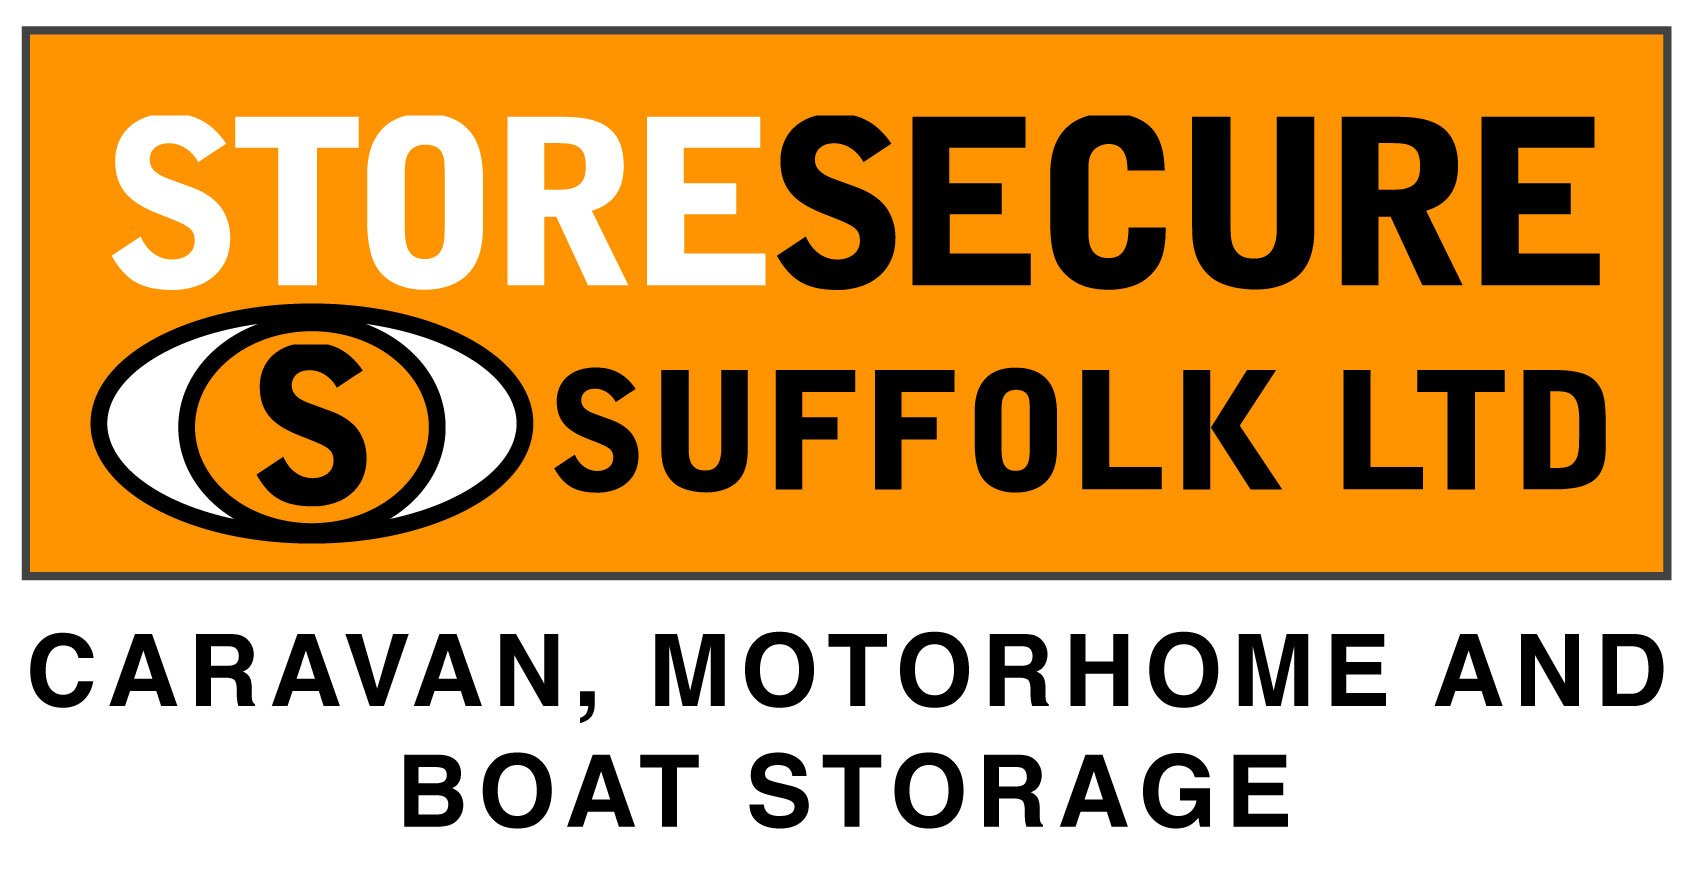 STORE SECURE logo